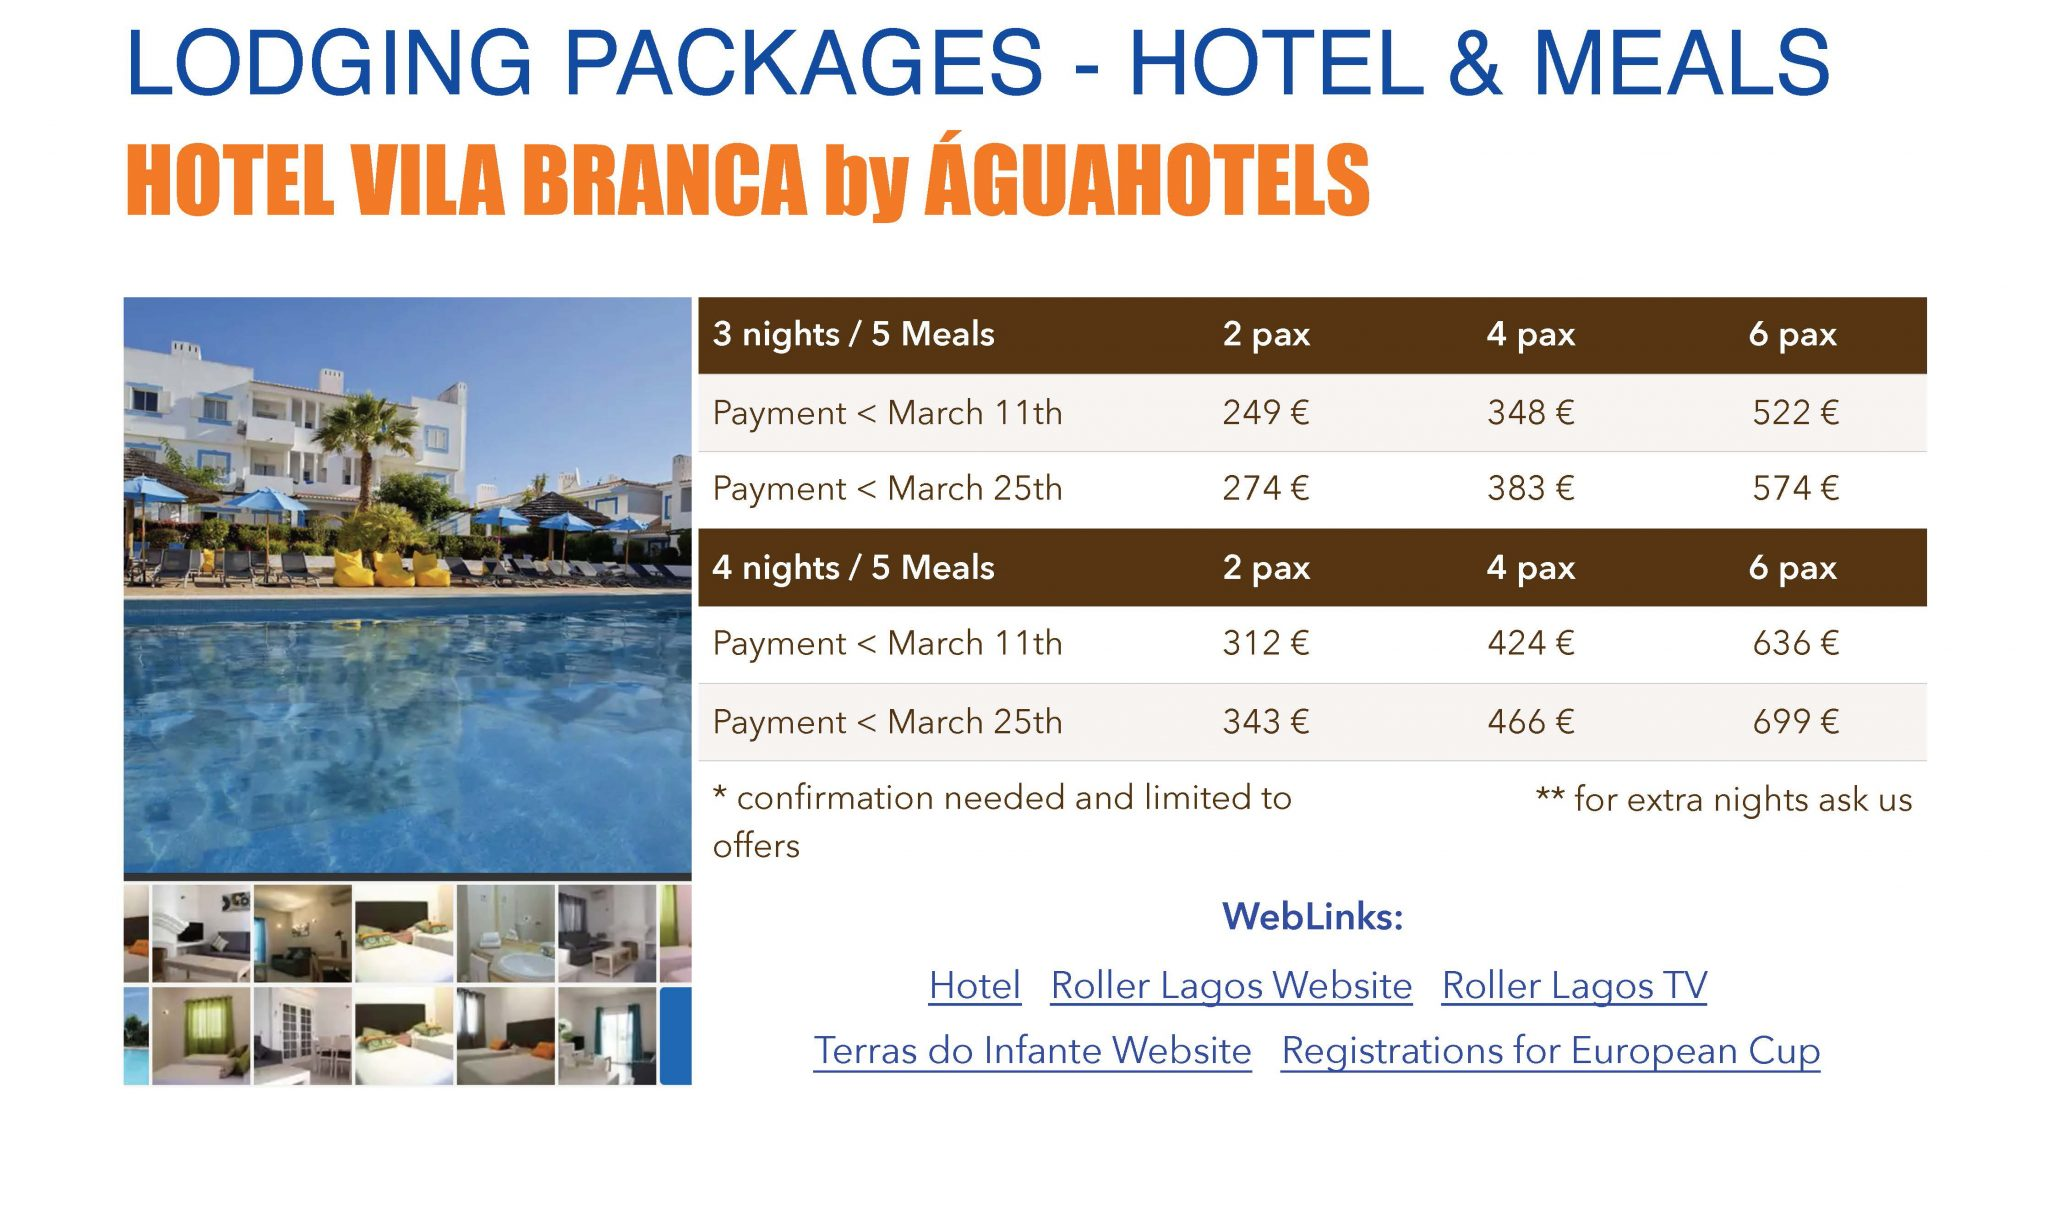 Lodging Packages lodging Lodging packages – Hotels and Meals Lodging Packages 2